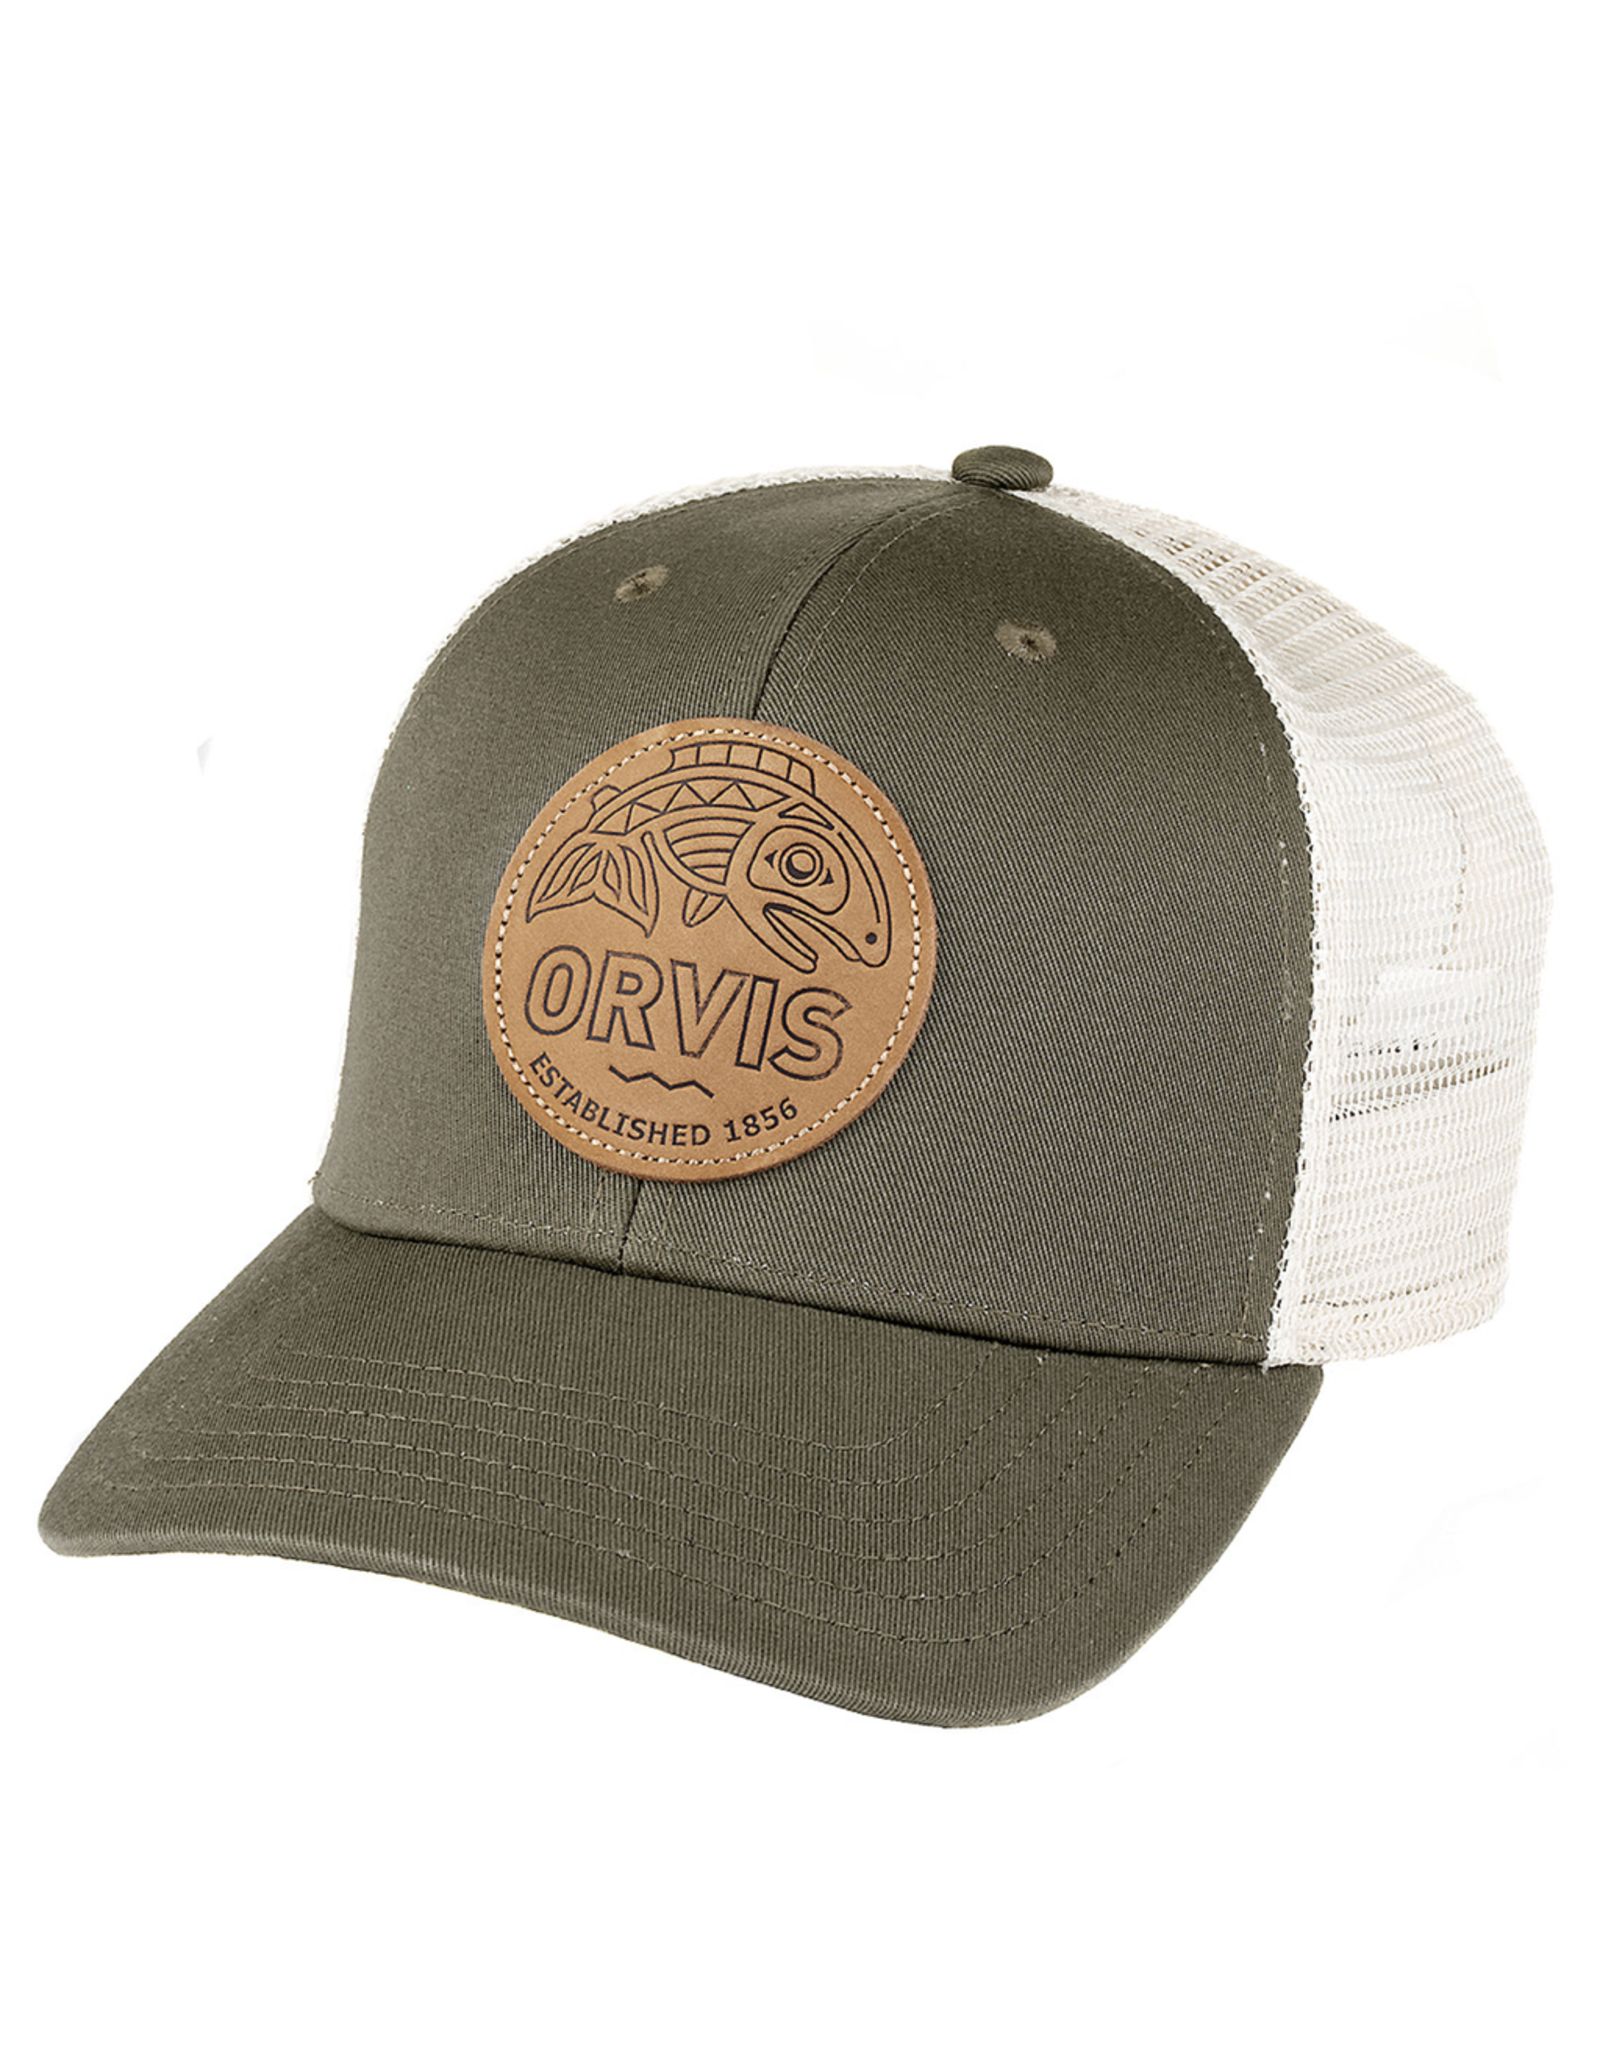 Orvis Cascadia Leather Patch Trucker…Olive